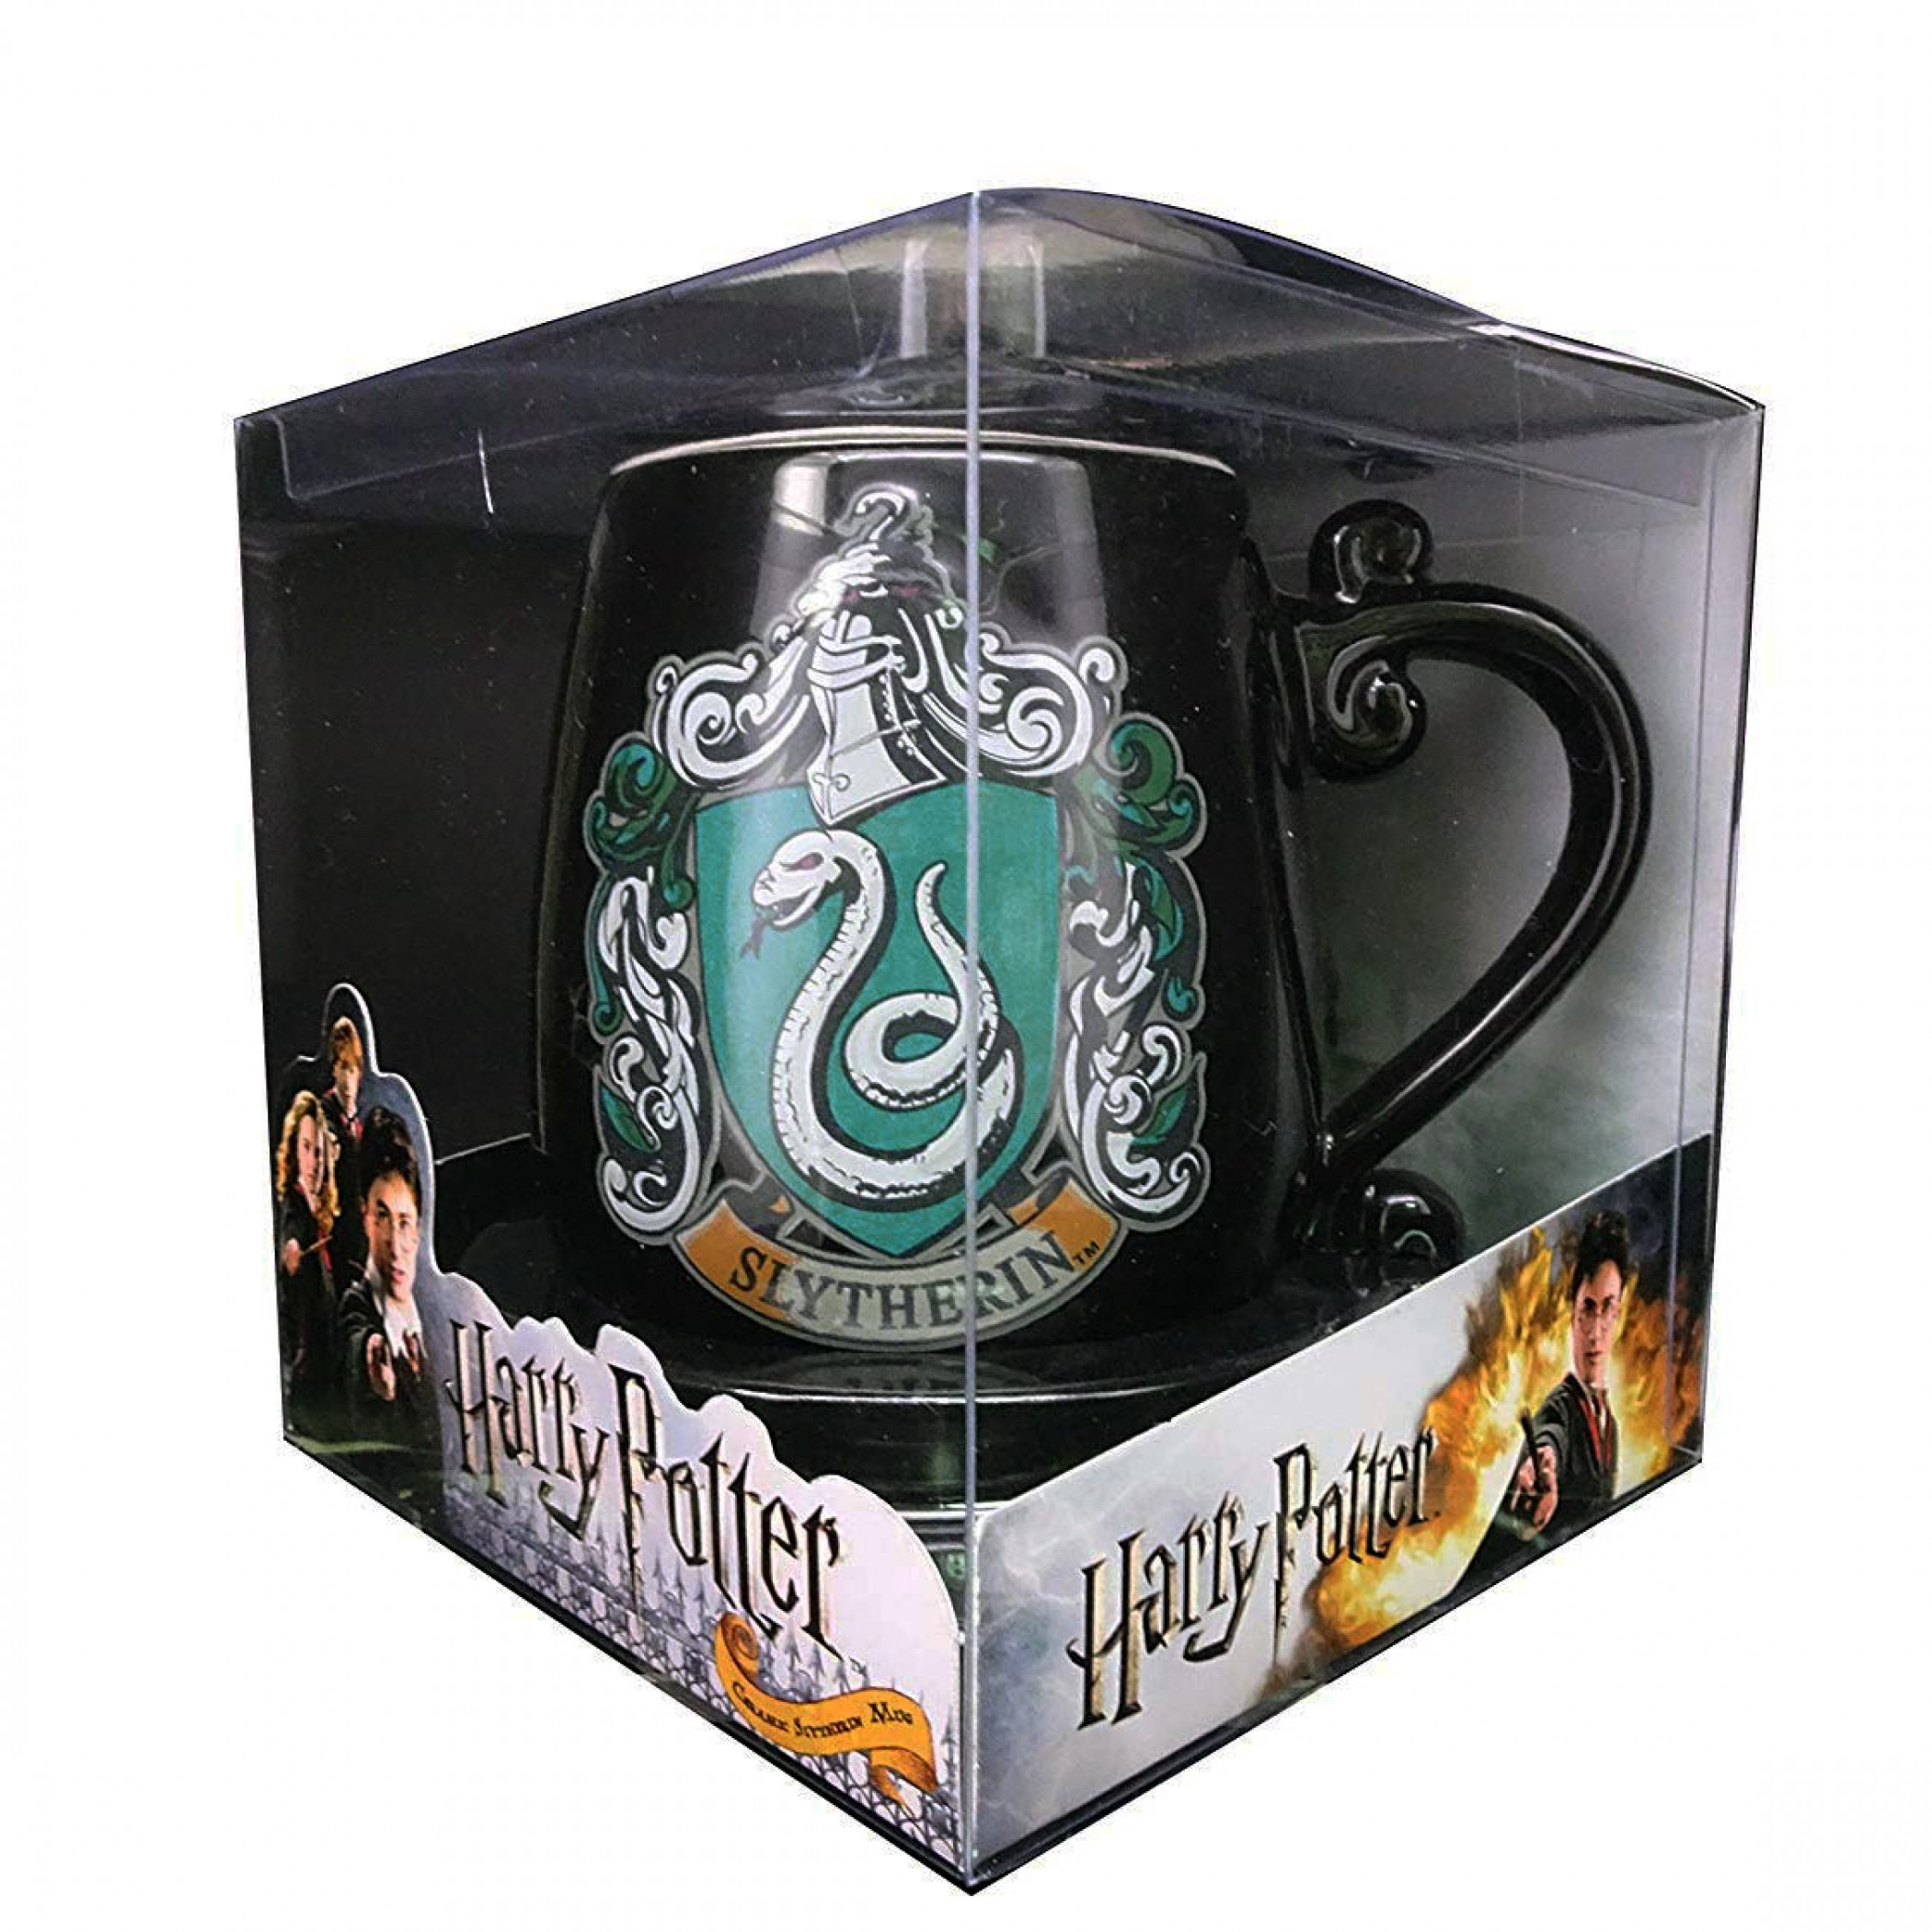 Harry Potter Slytherin Mug